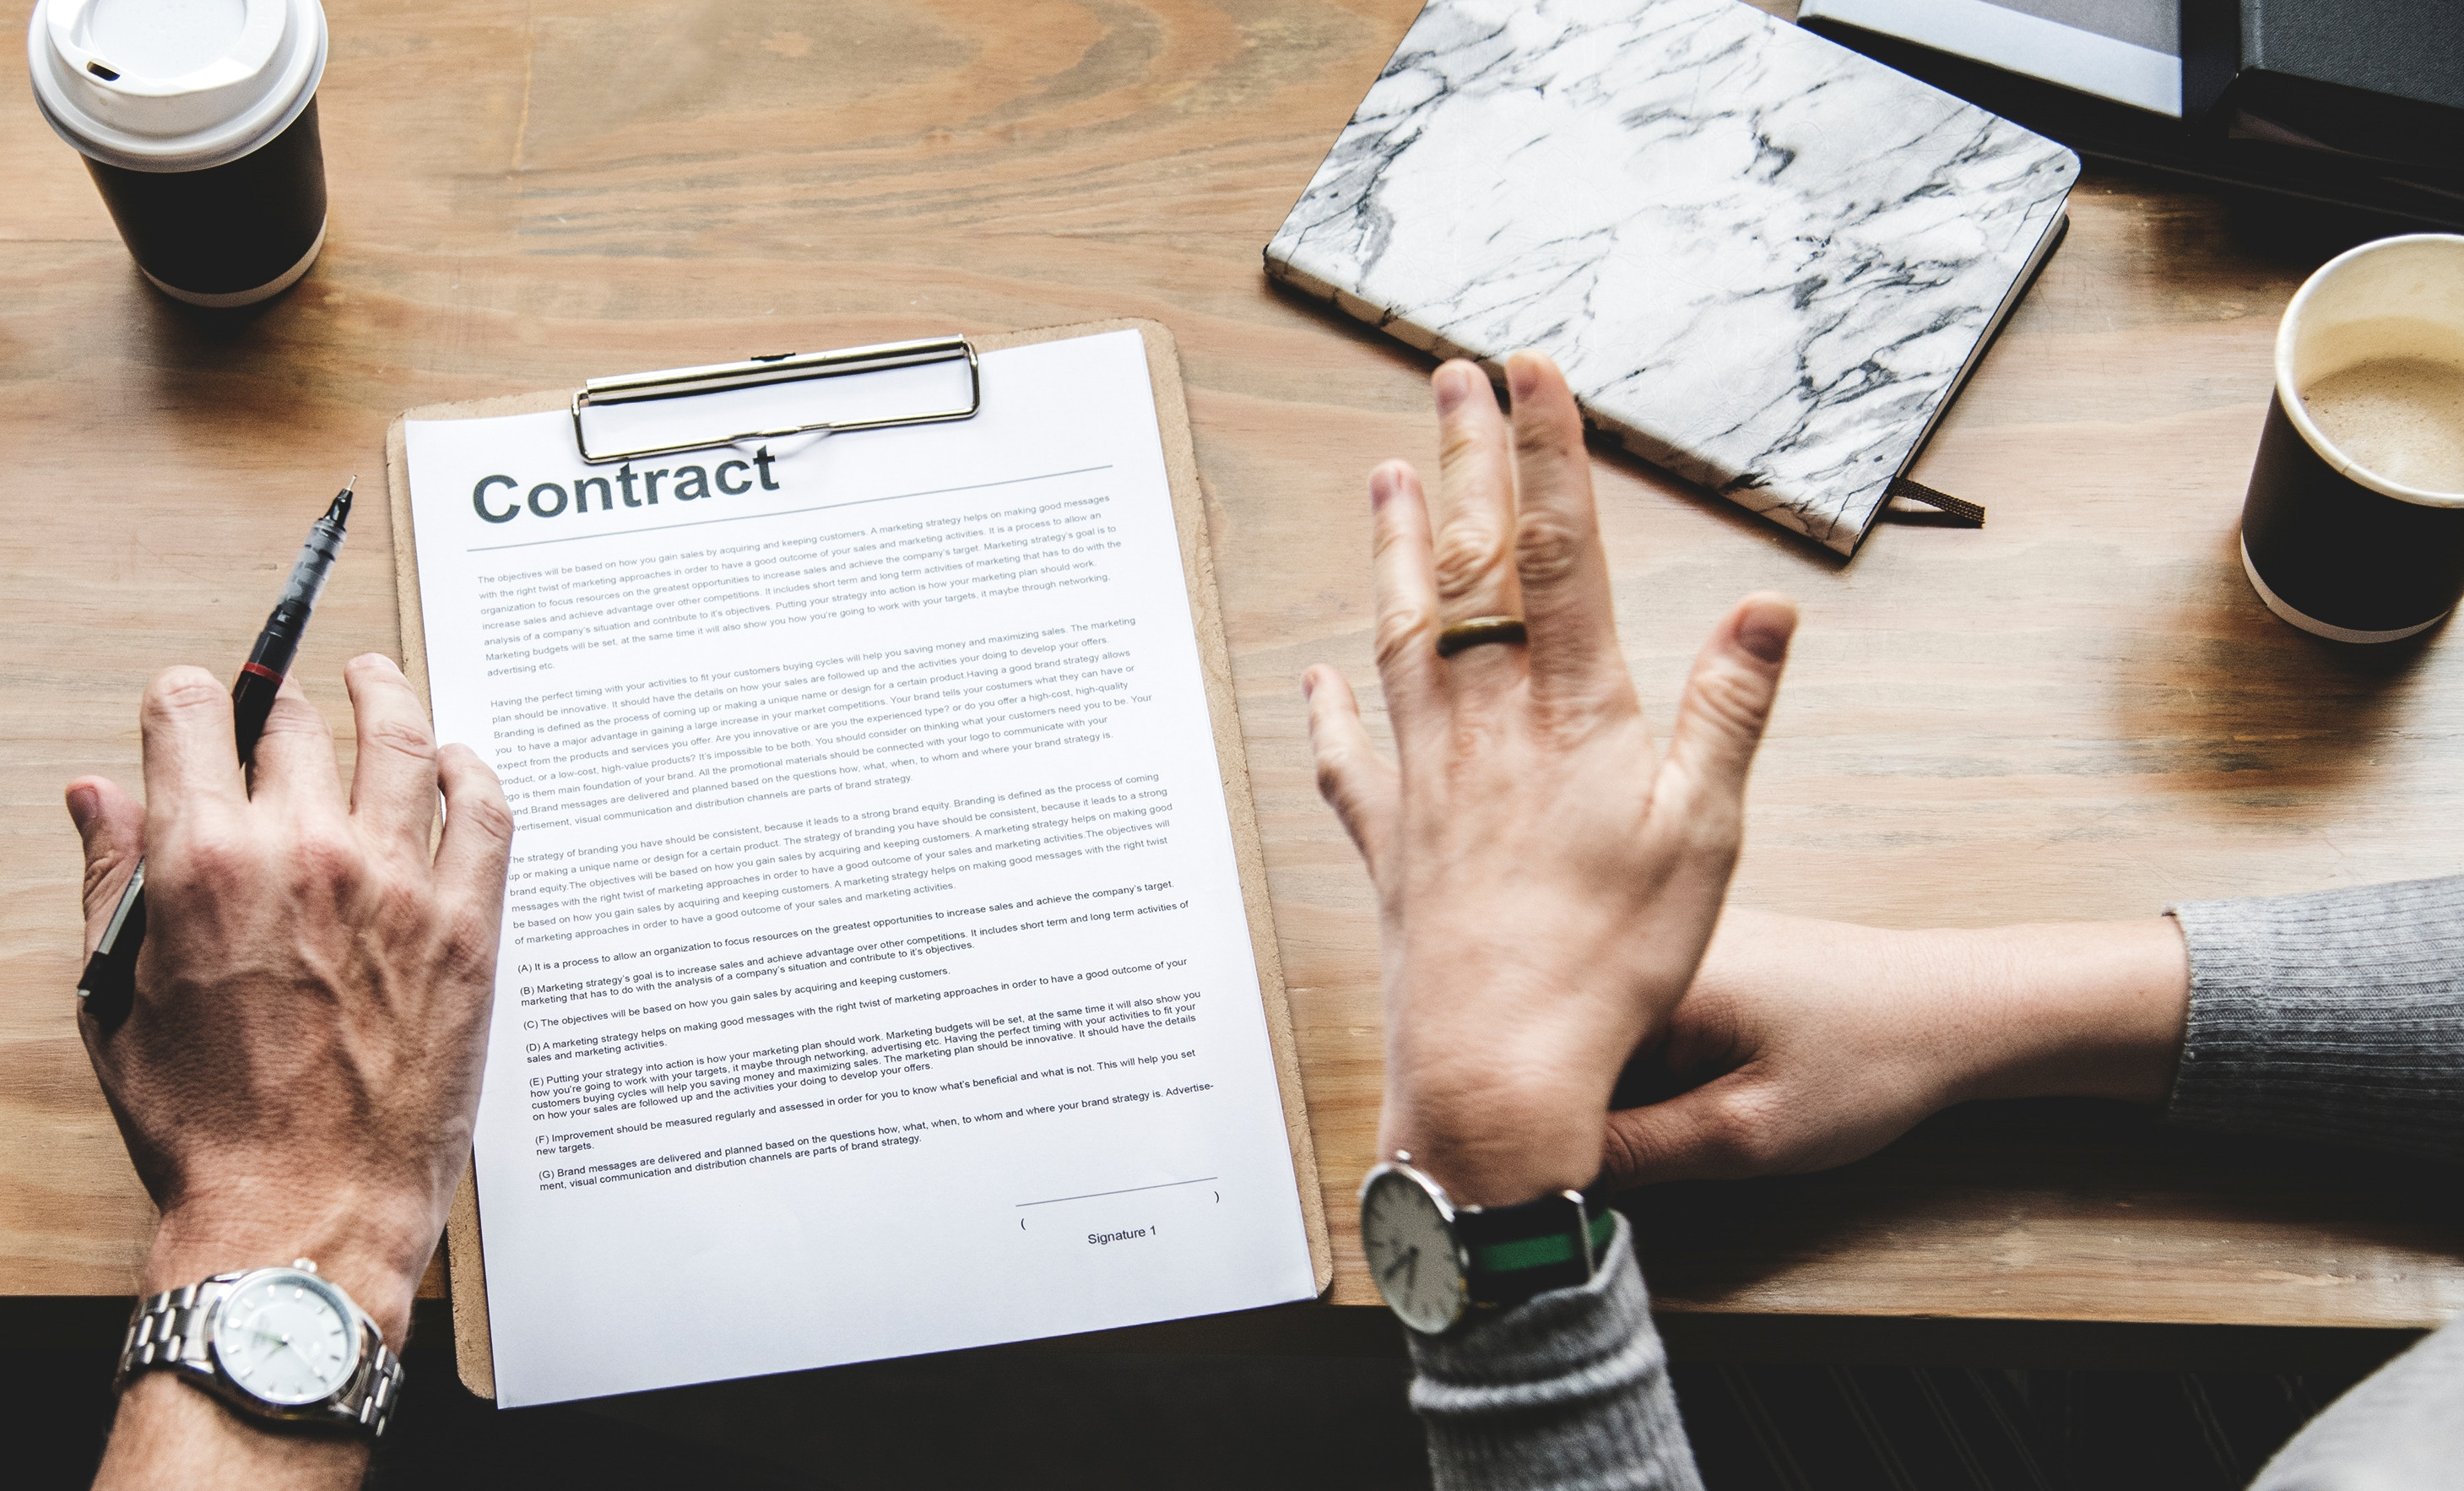 Contract or Direct: <br>What's the best way to get work done?